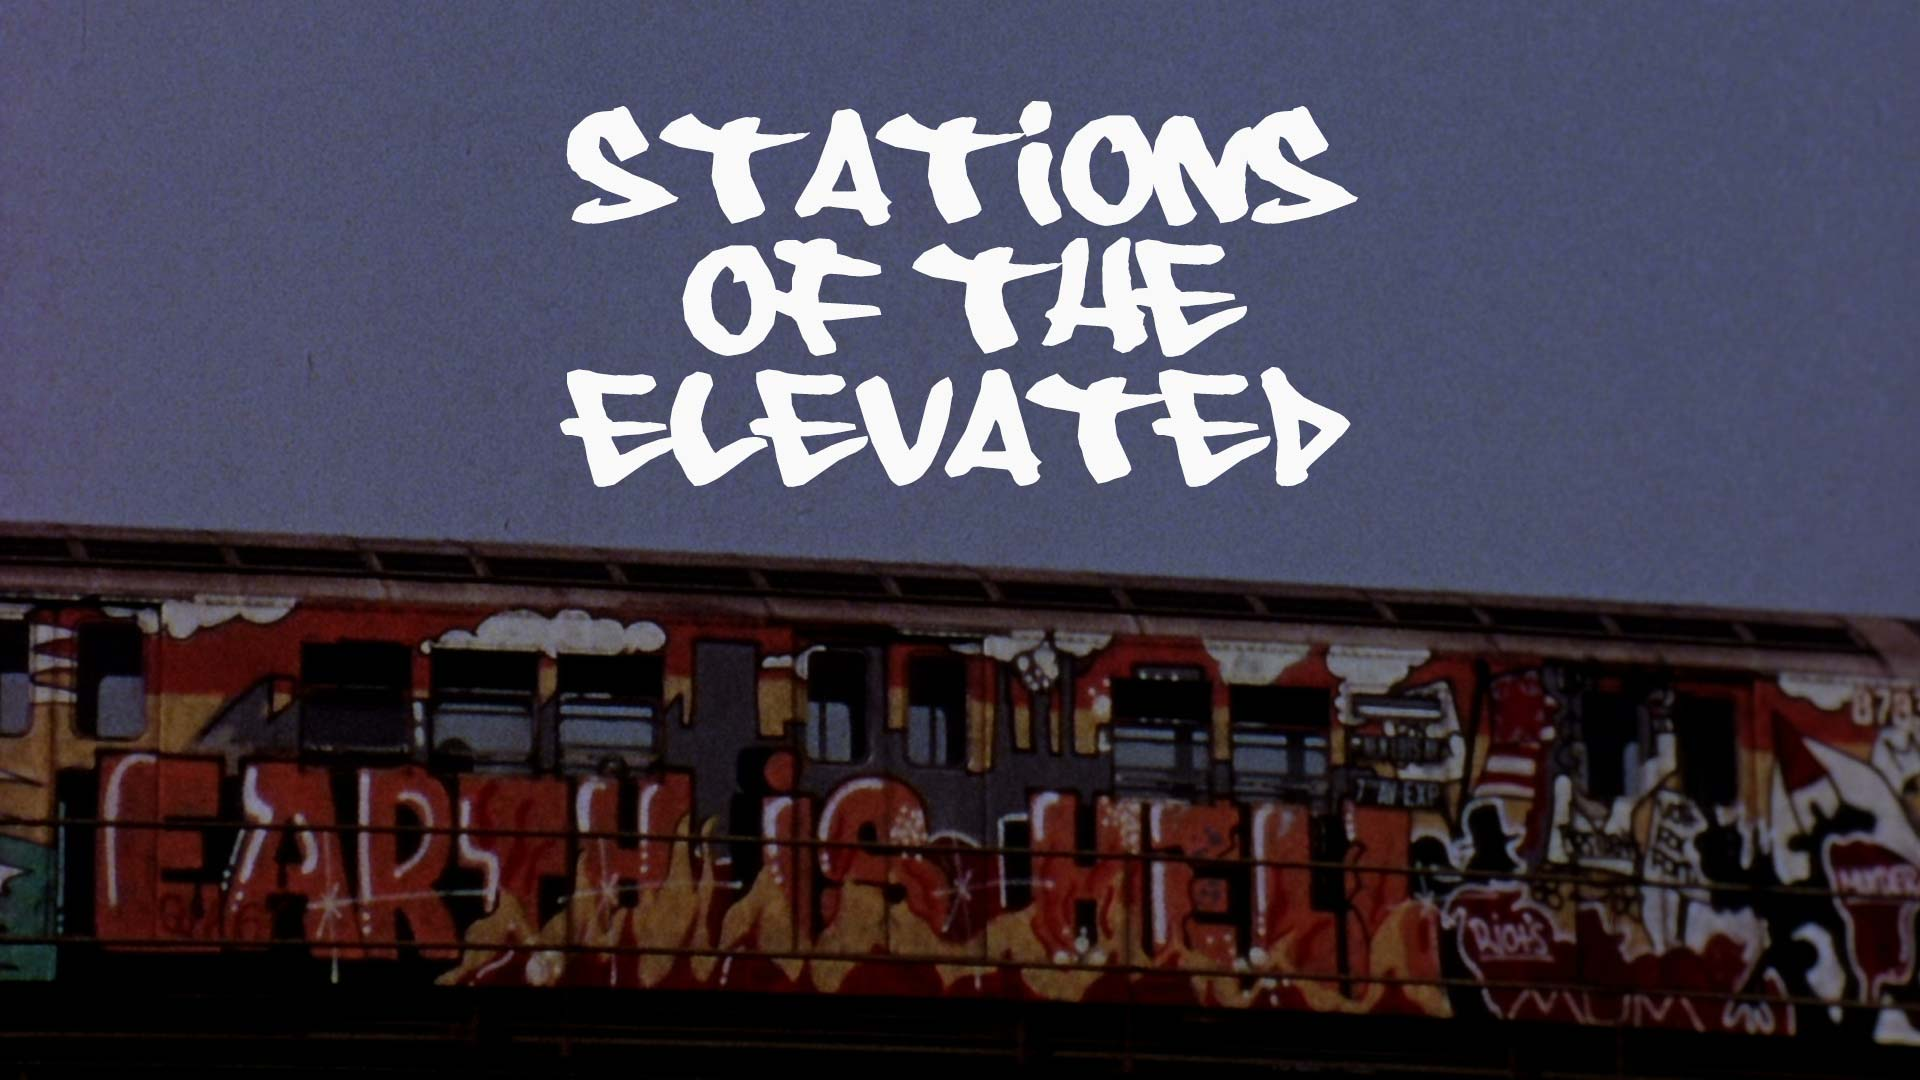 Stations of the Elevated - image